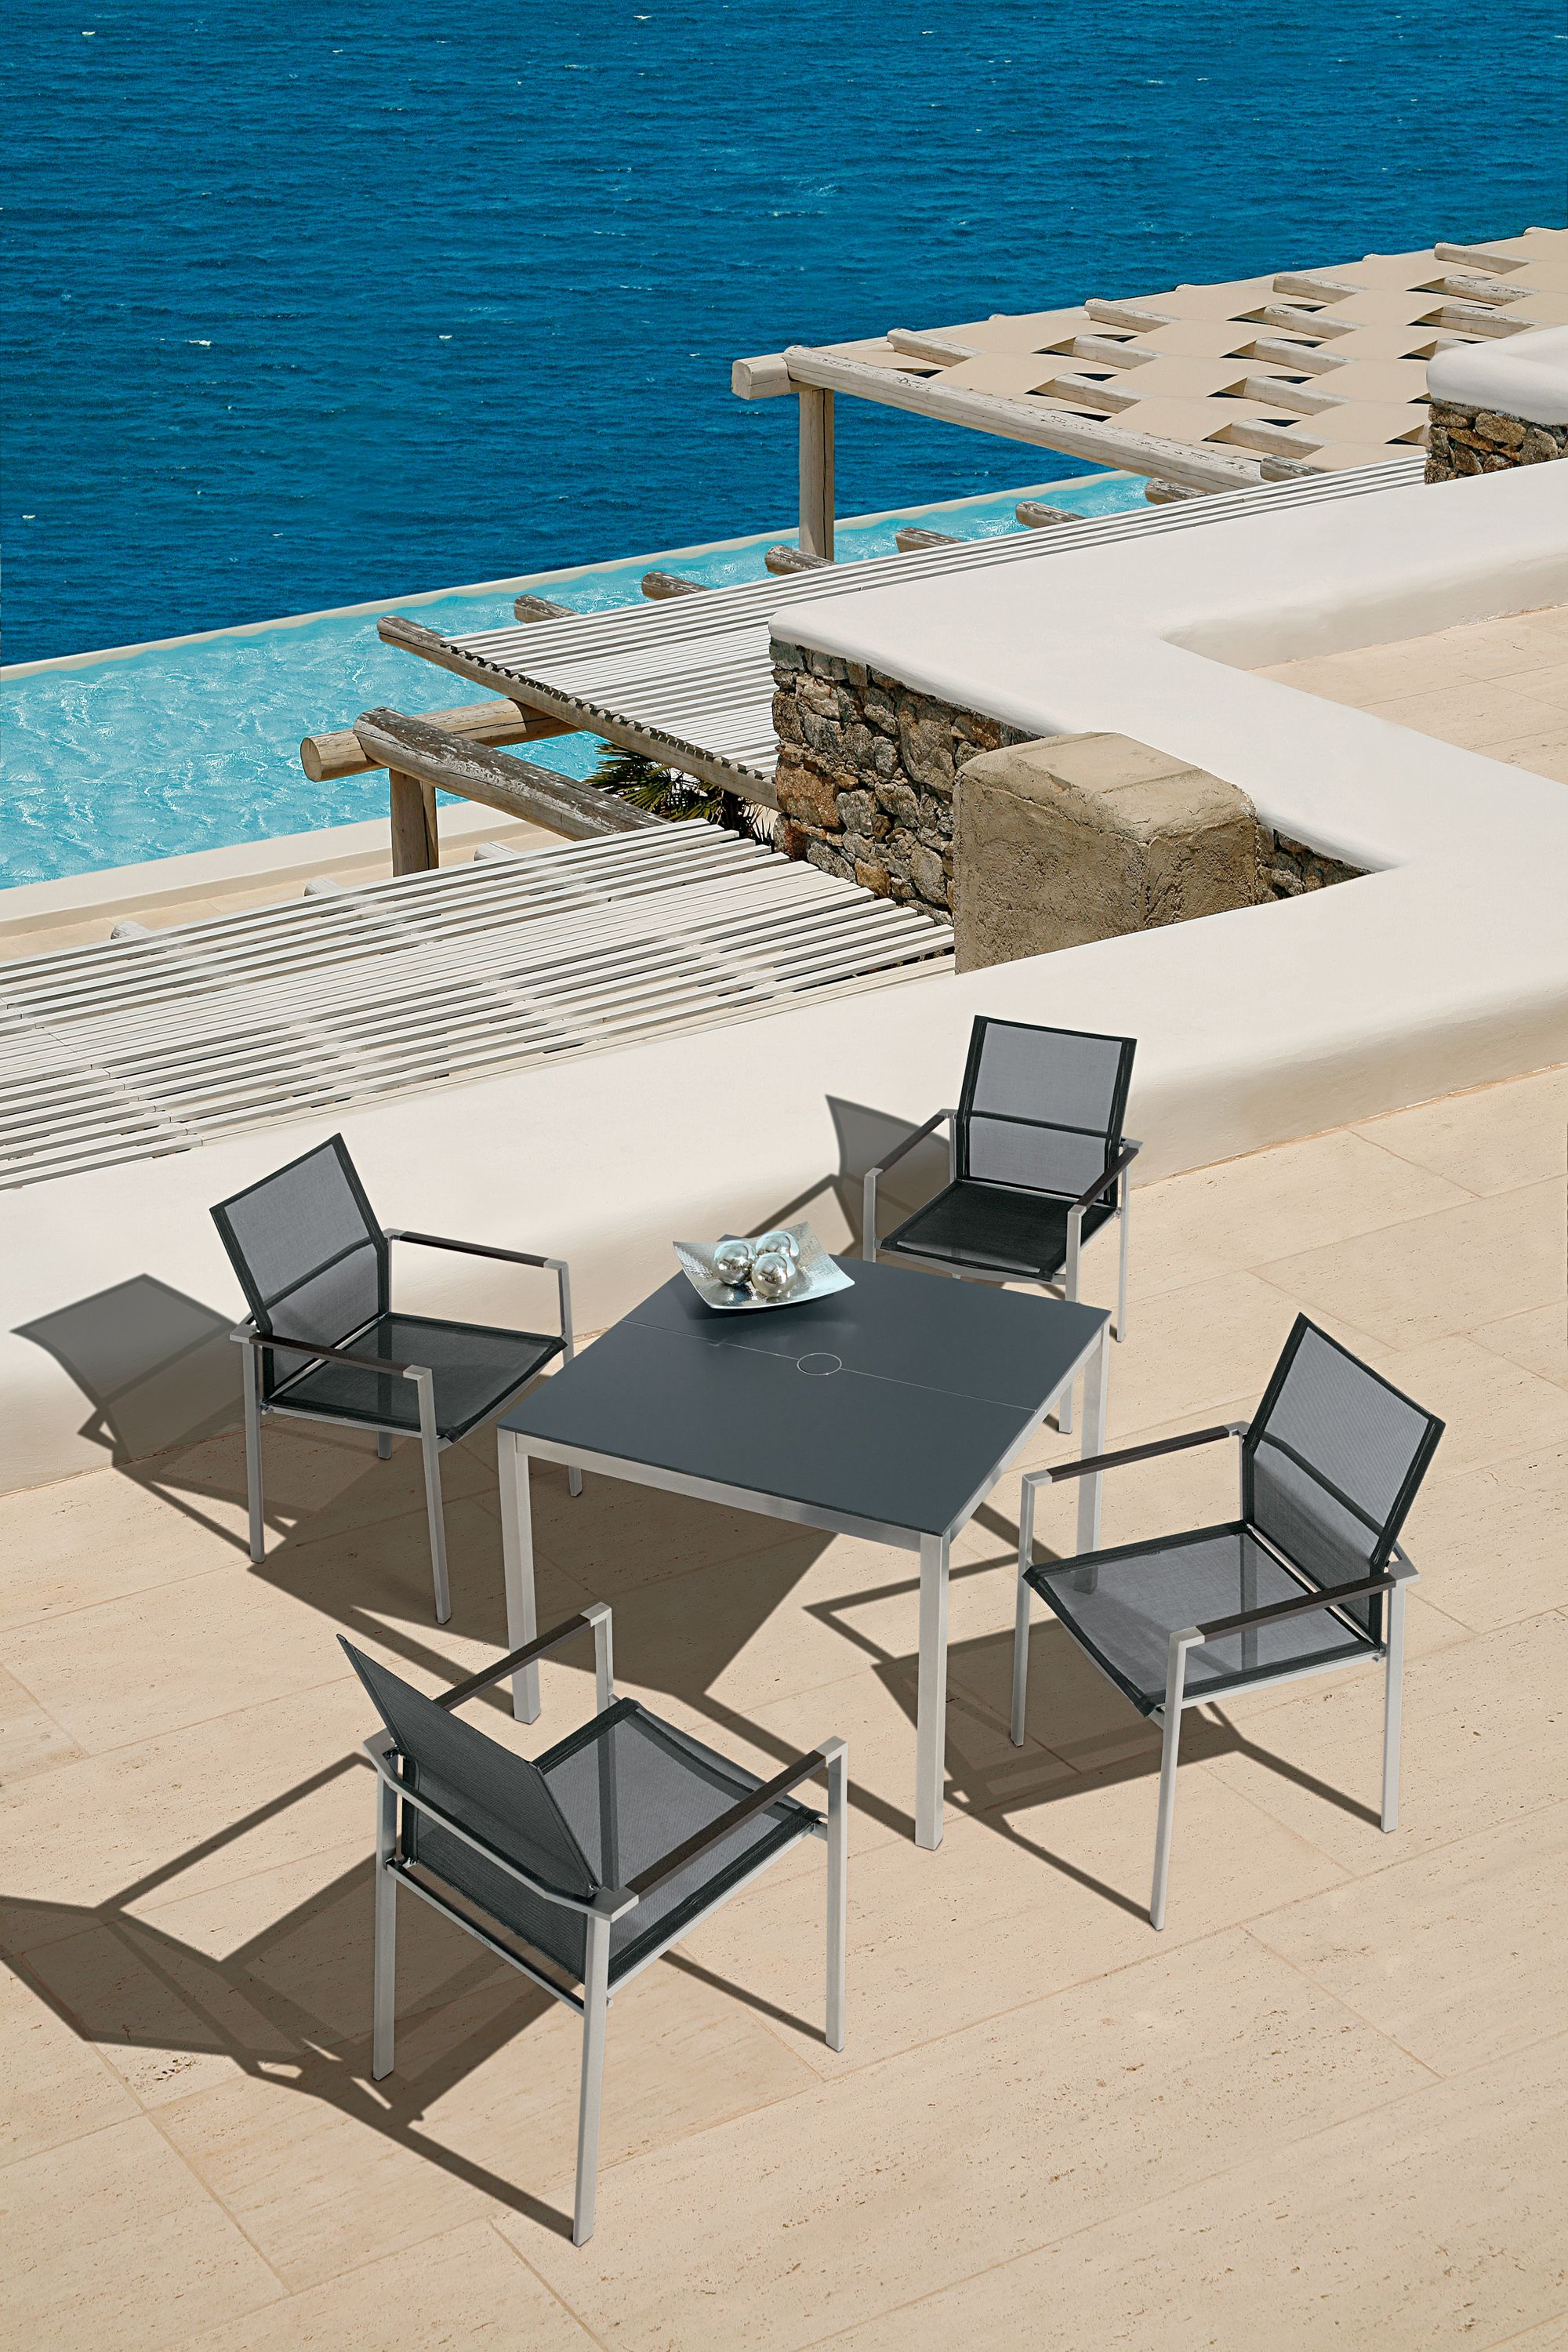 High End Outdoor Furniture, Barlow Tyrie, Rausch Classics, Sifas, Royal Botania, Skargaarden, Skagerak, Lloyd Flanders, Mamagreen, Custom Upholstered Furniture, Solid Cherry Wood Furniture : Equinox Collection